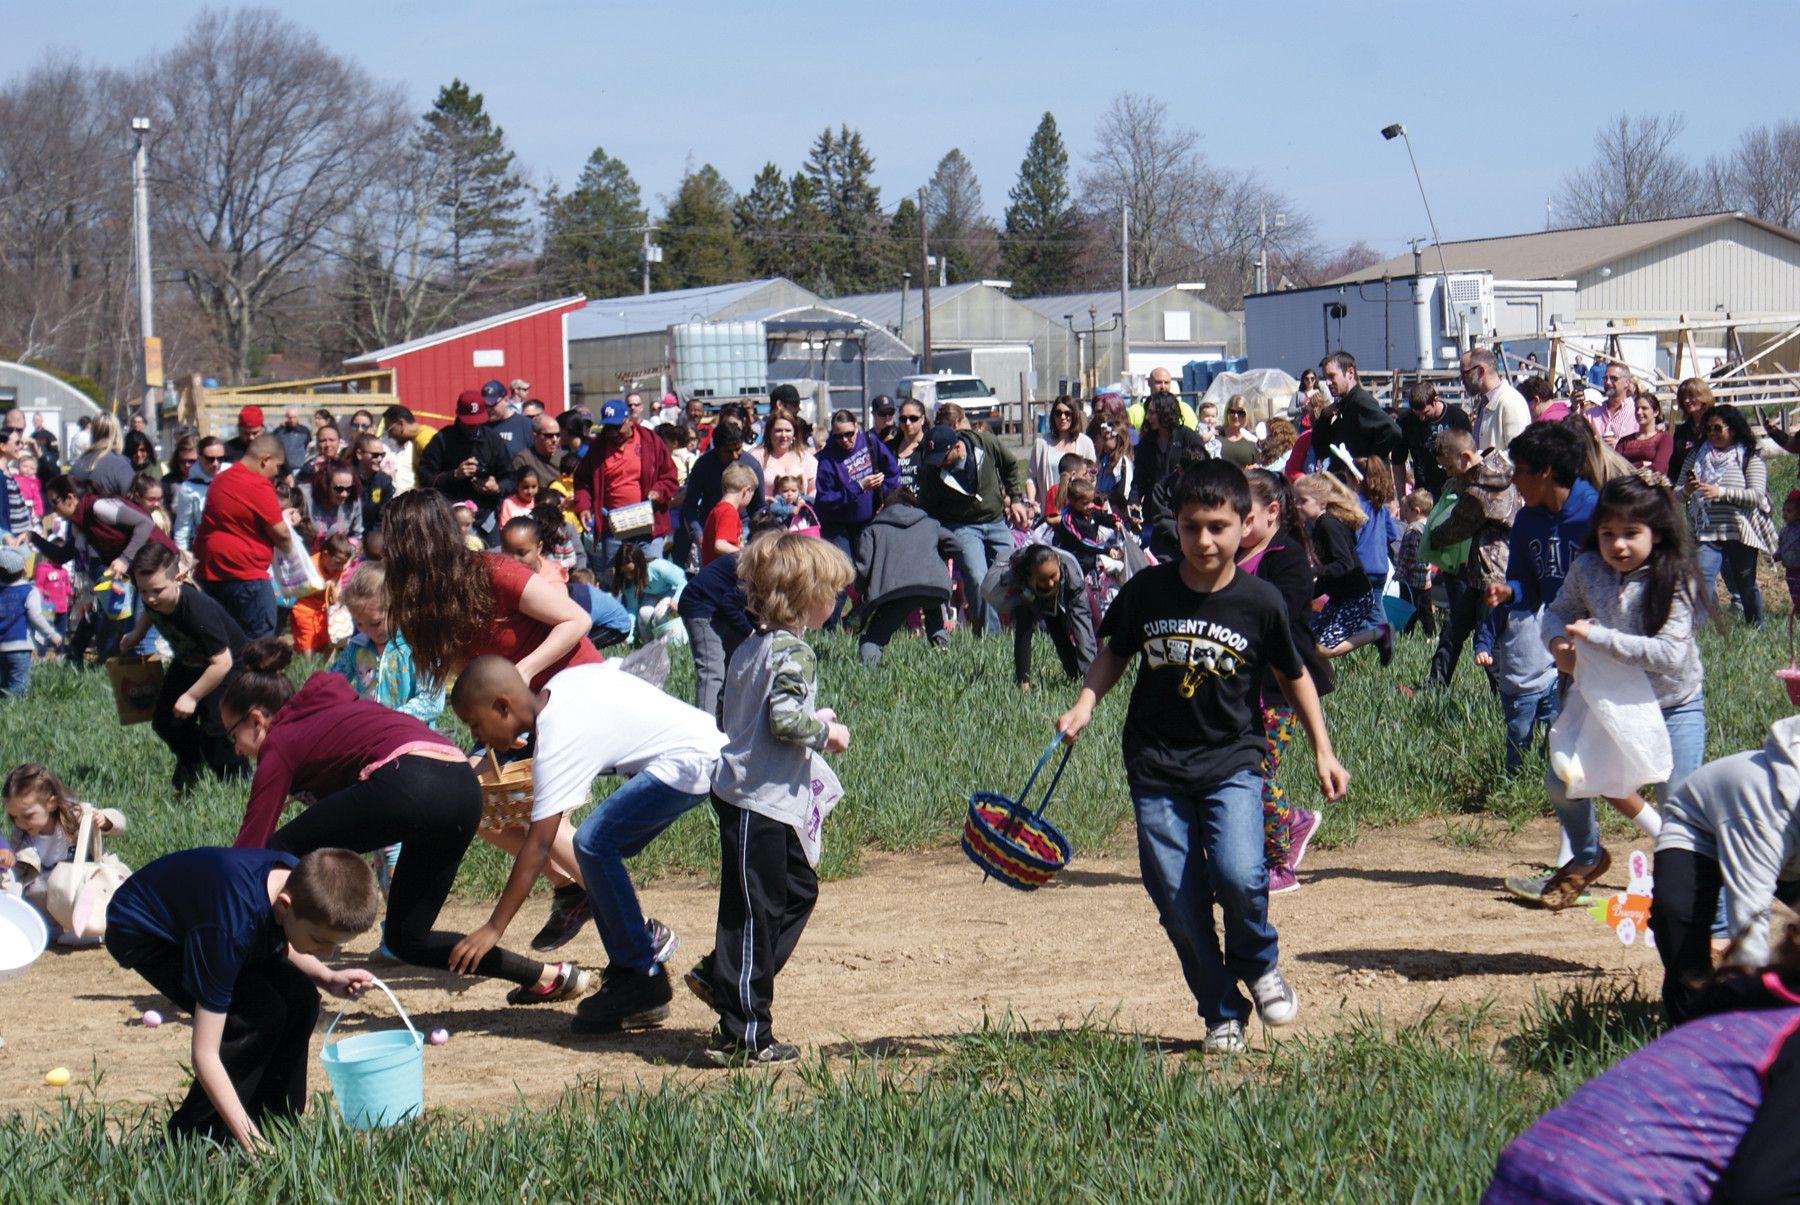 ON THE HUNT: Hundreds of children and their families turned out for the Annual Confreda Farms Easter Egg Hunt on April 15. For the second year in a row, the event was sponsored by Cox Cable. Each participating child received a bag of candy in exchange for the eggs they found.